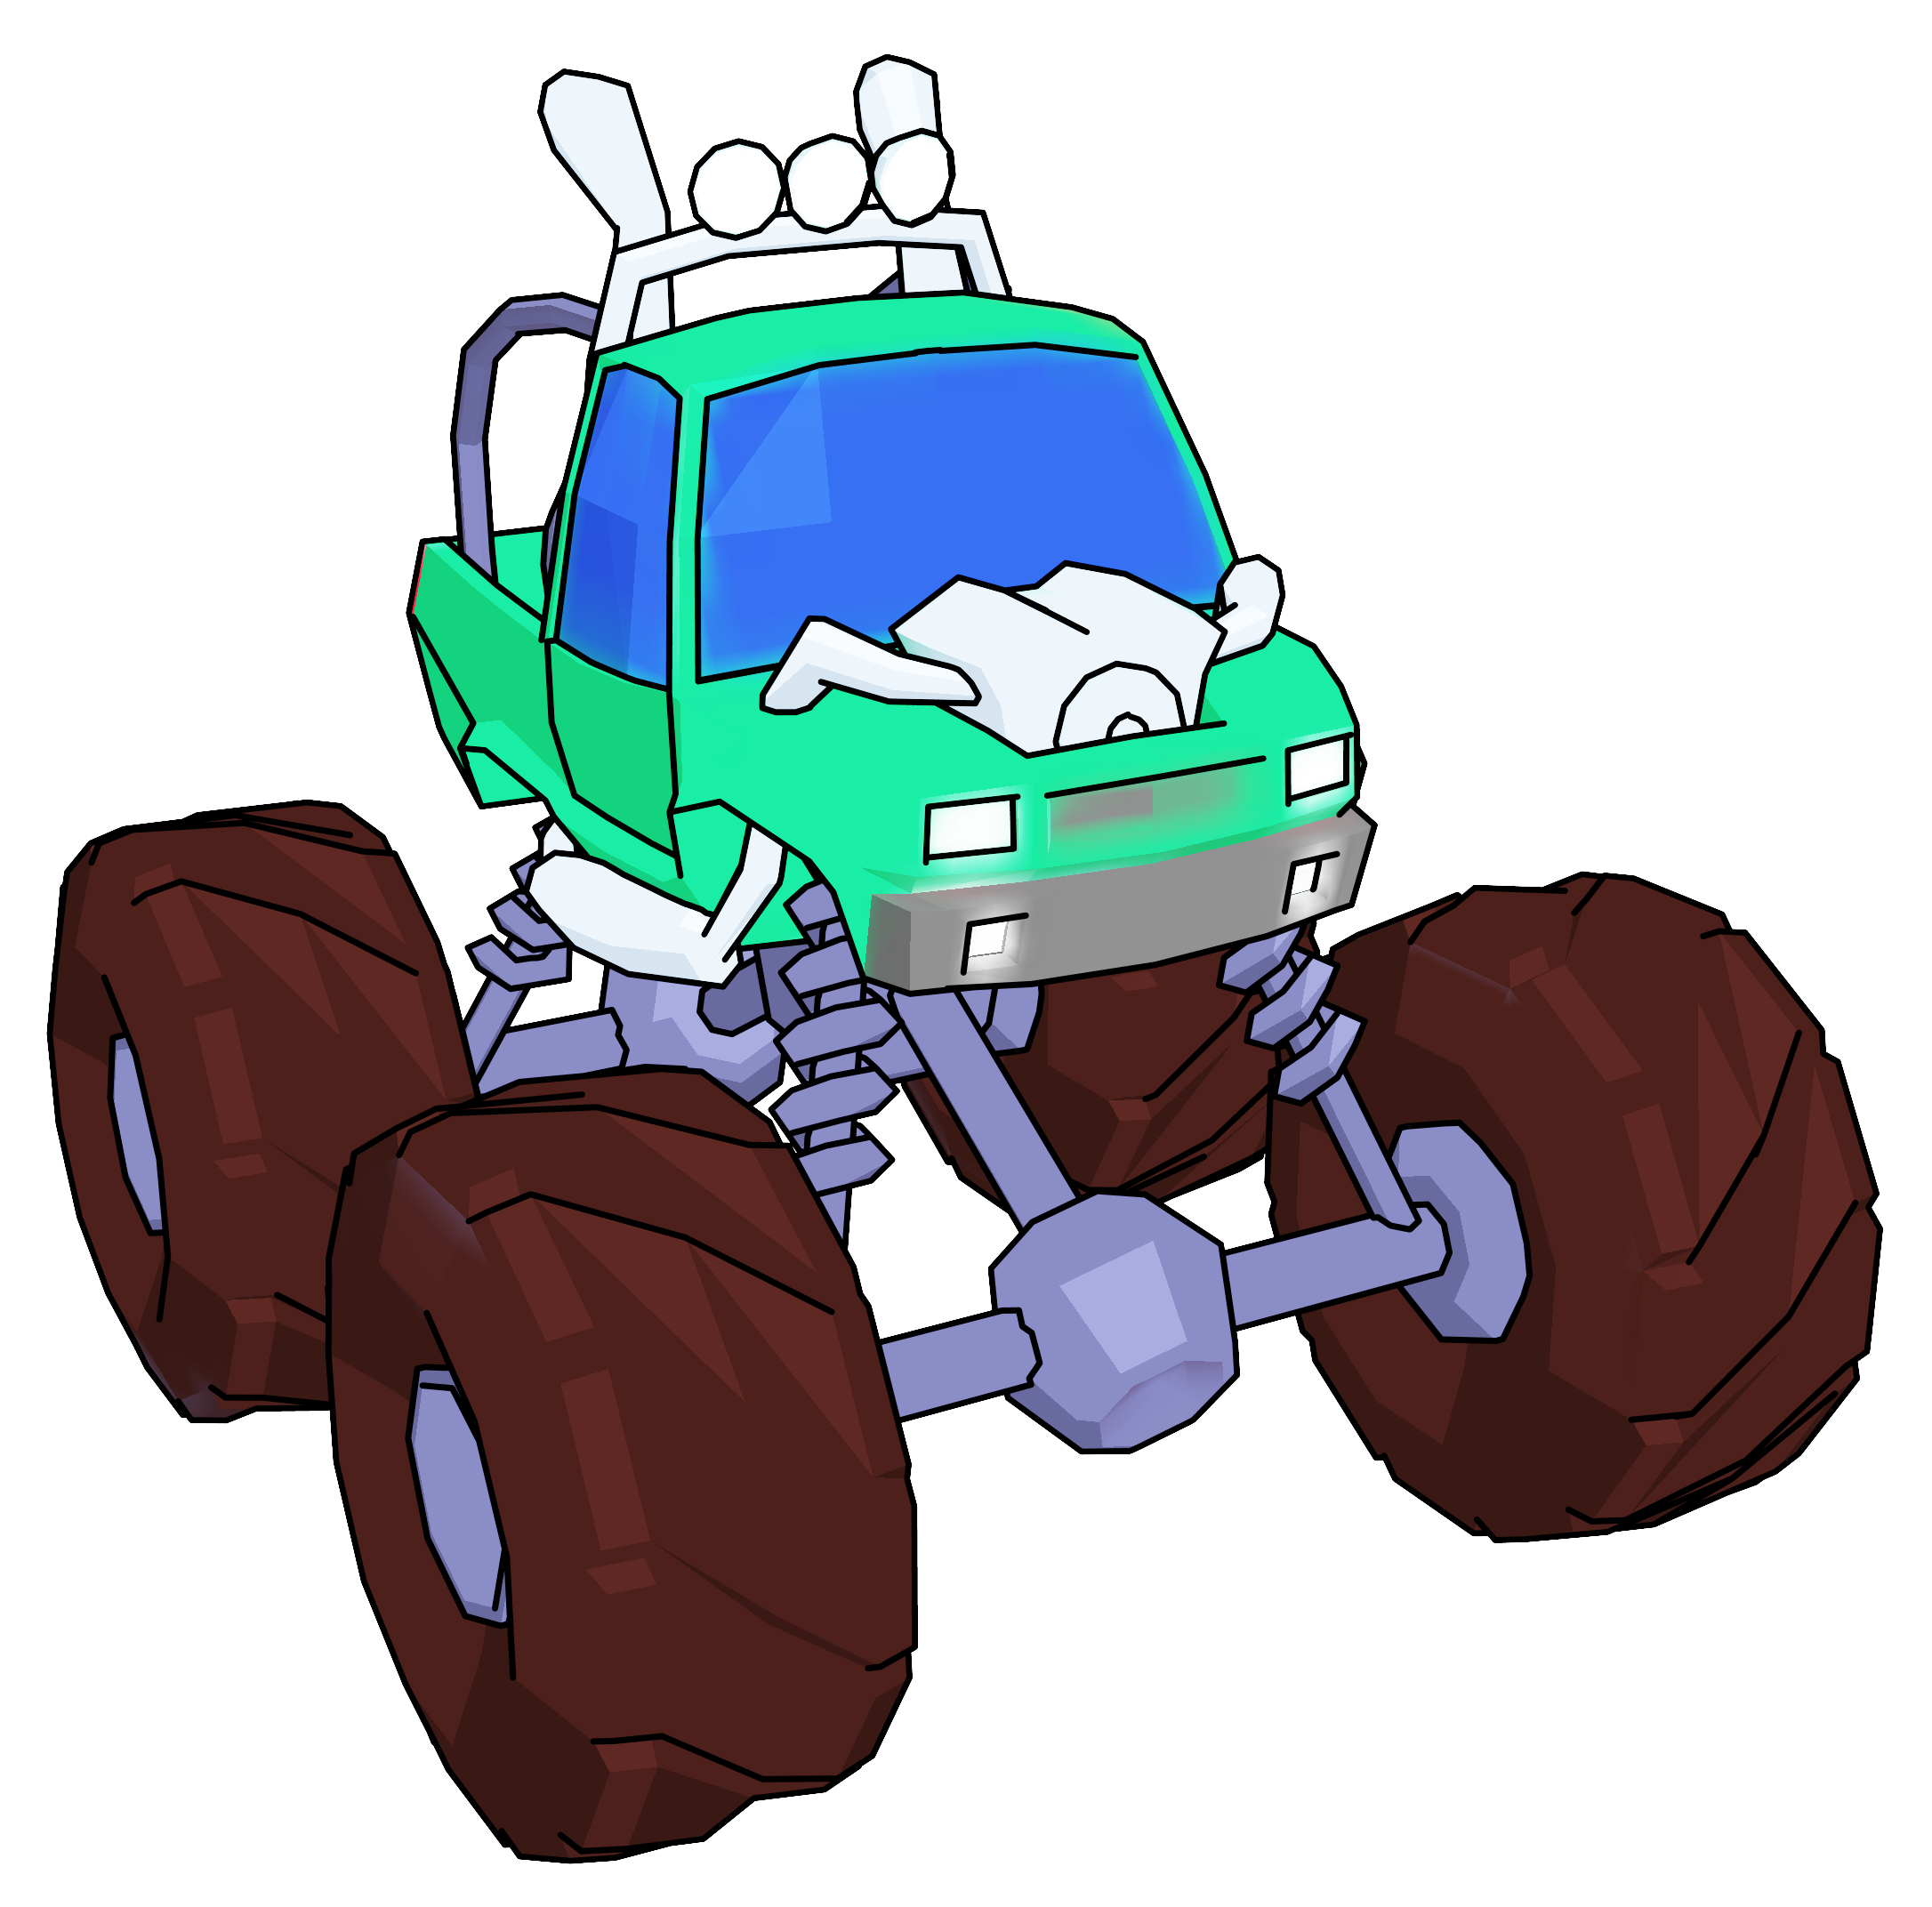 Truck cartoon perspective png. Monster clipart angry monster